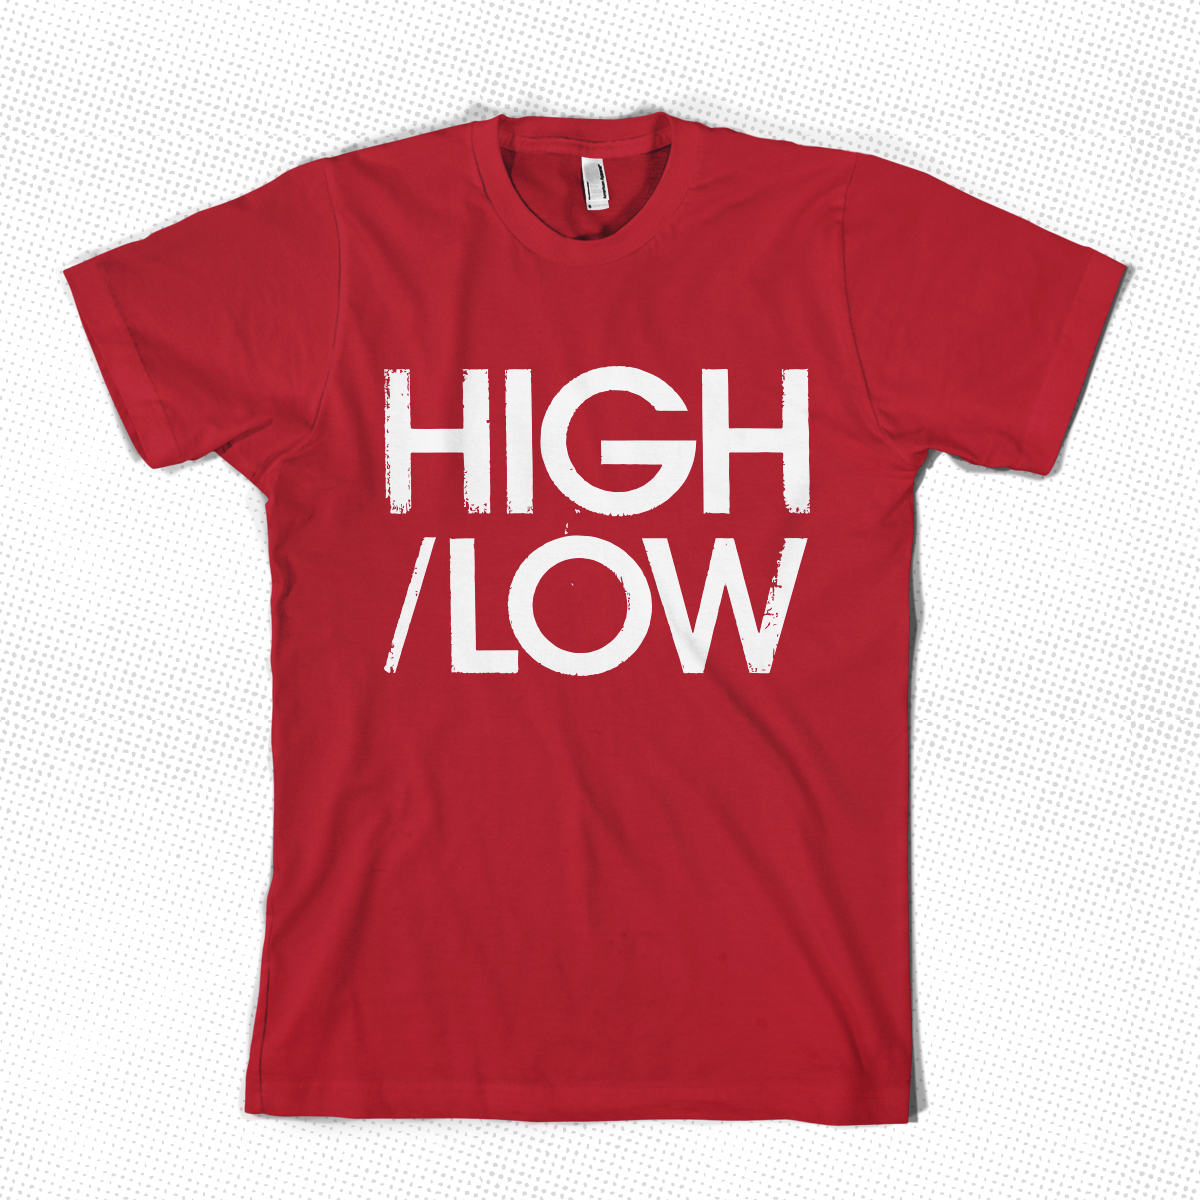 high-low-grunge-tshirt-2018-red